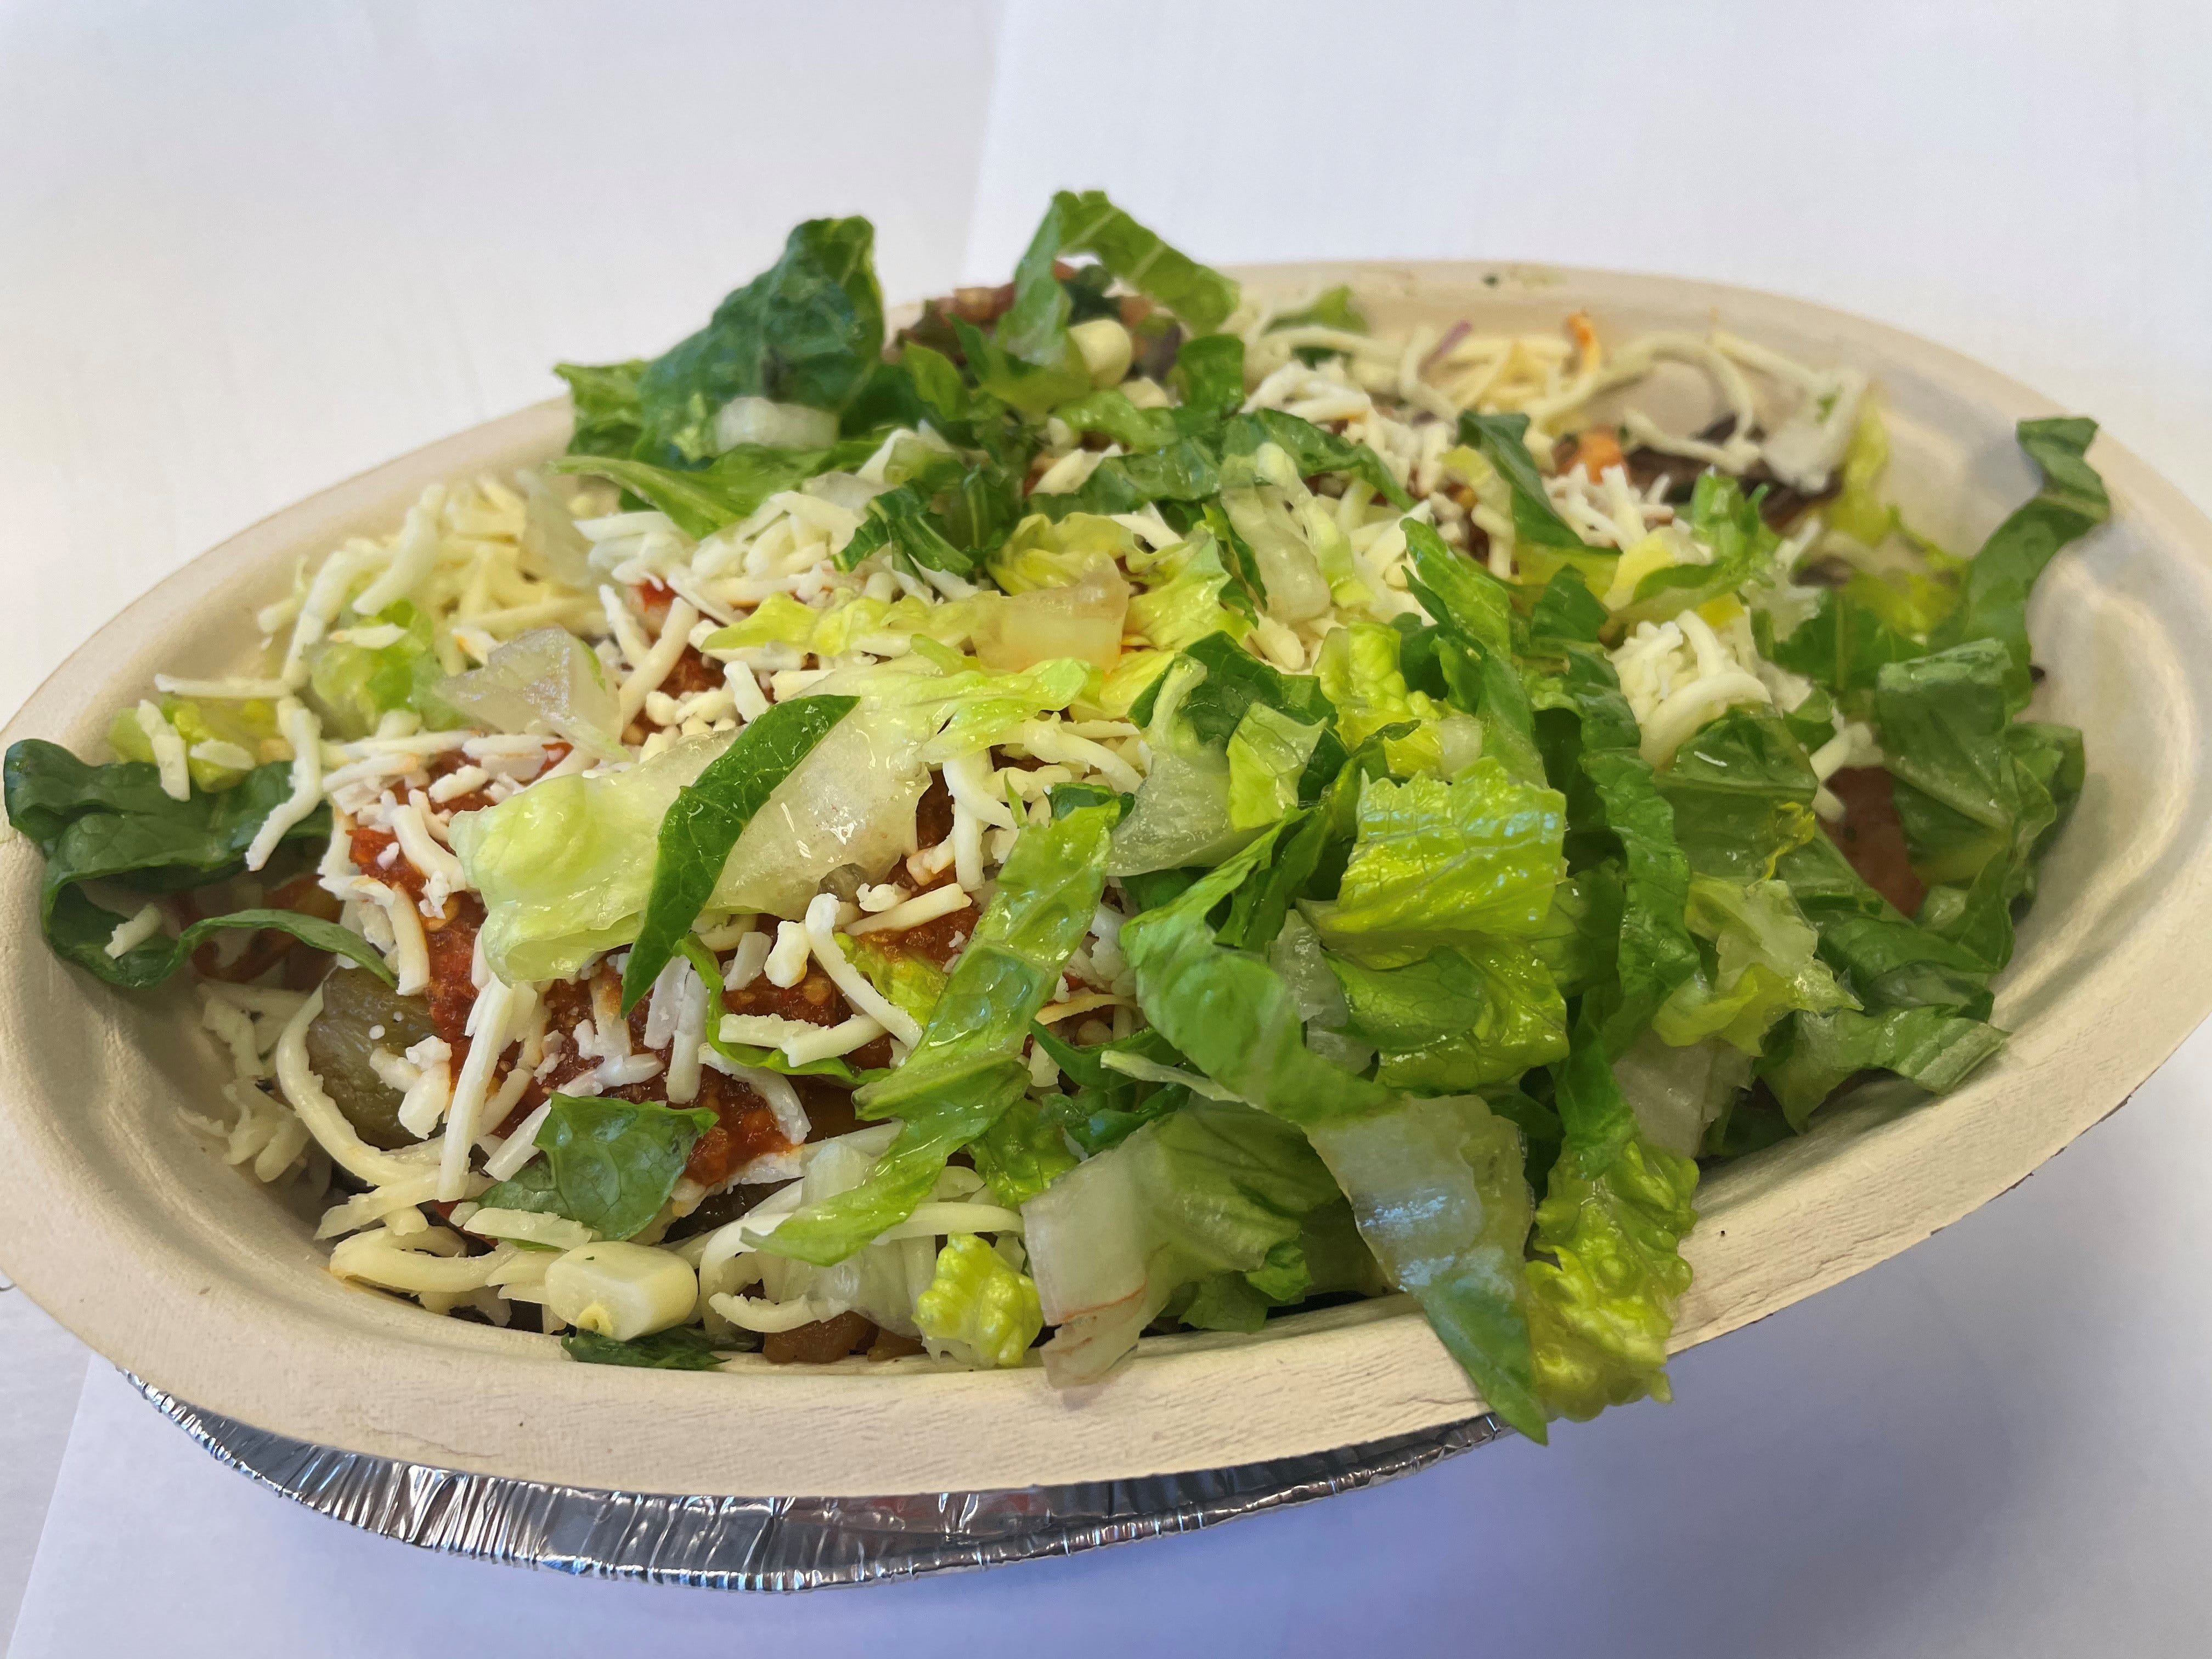 Secret Fork: Chipotle's in town, so how does it fare?